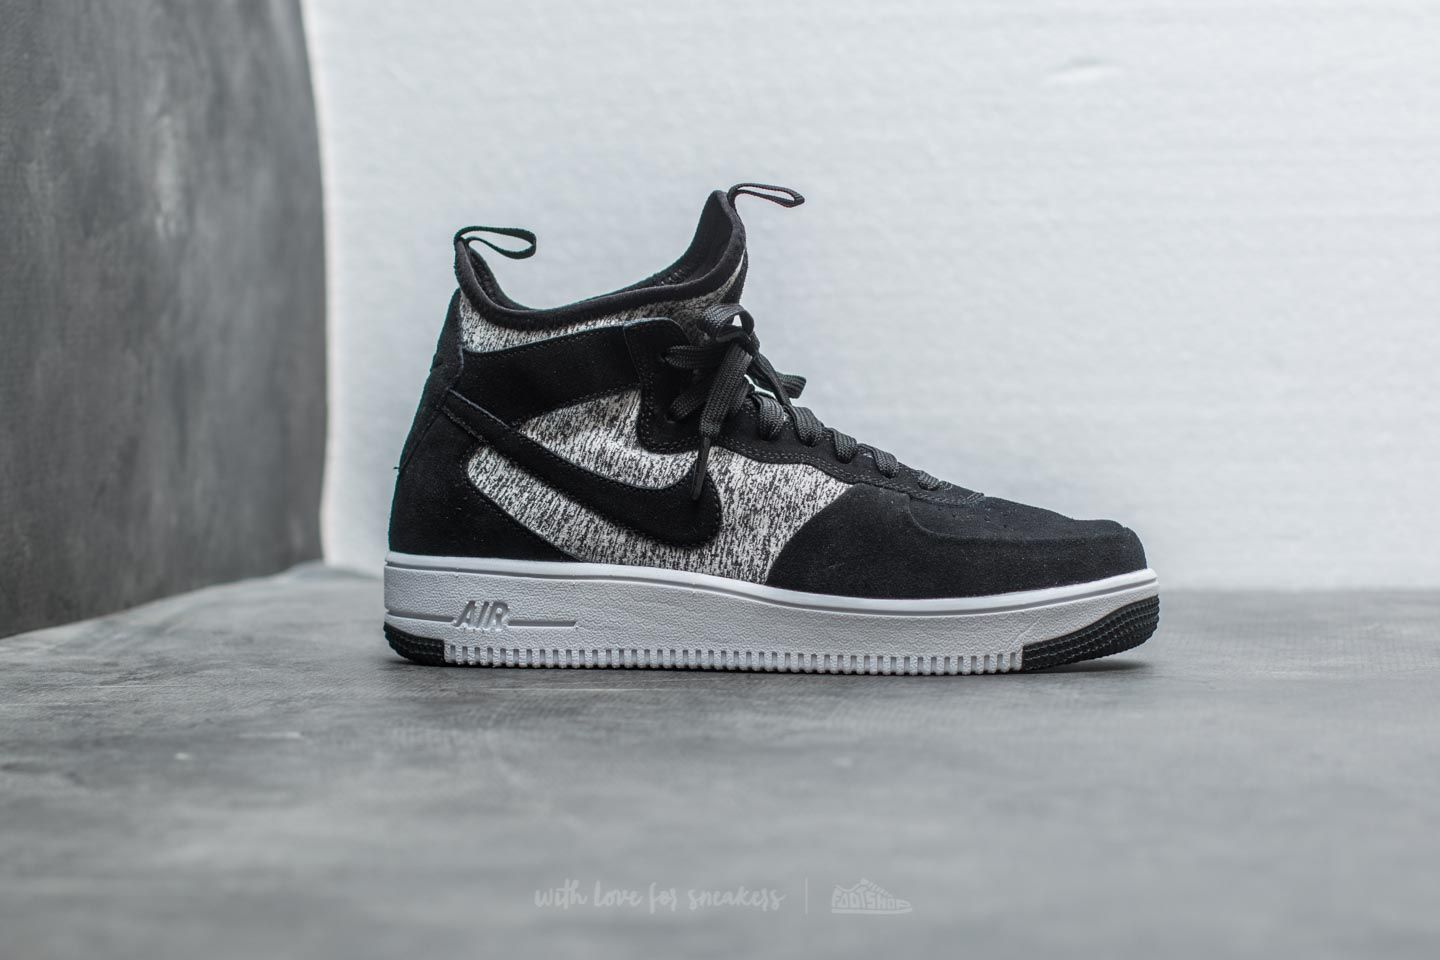 Nike Air Force 1 Ultraforce Mid Premium Black Black White | Footshop